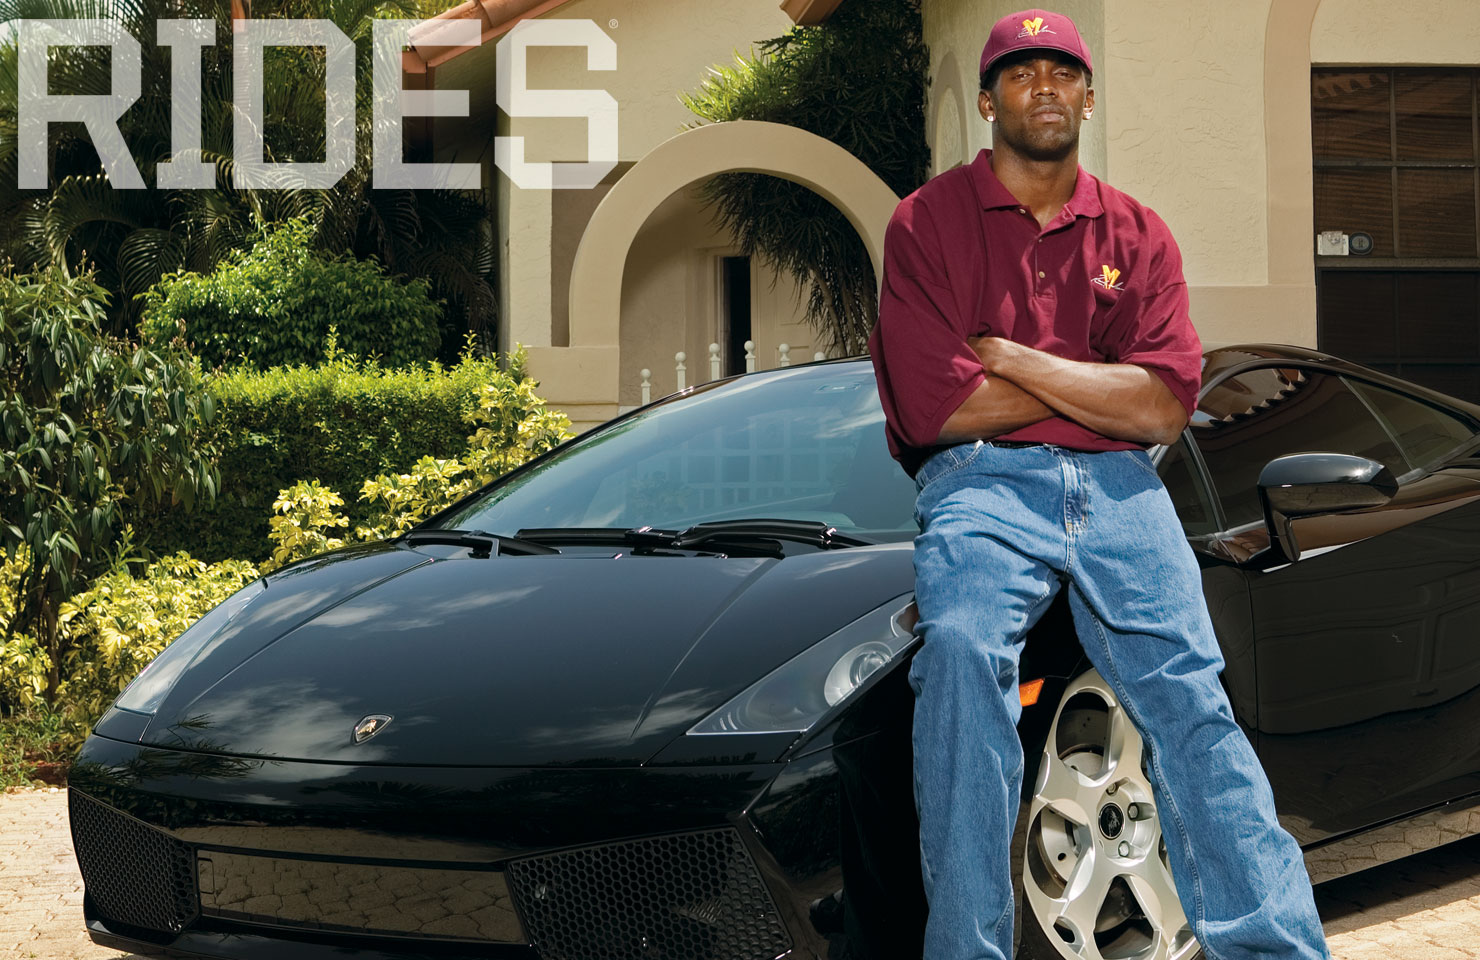 Throwback Thursday! Randy Moss's Lamborghini Gallardo ...